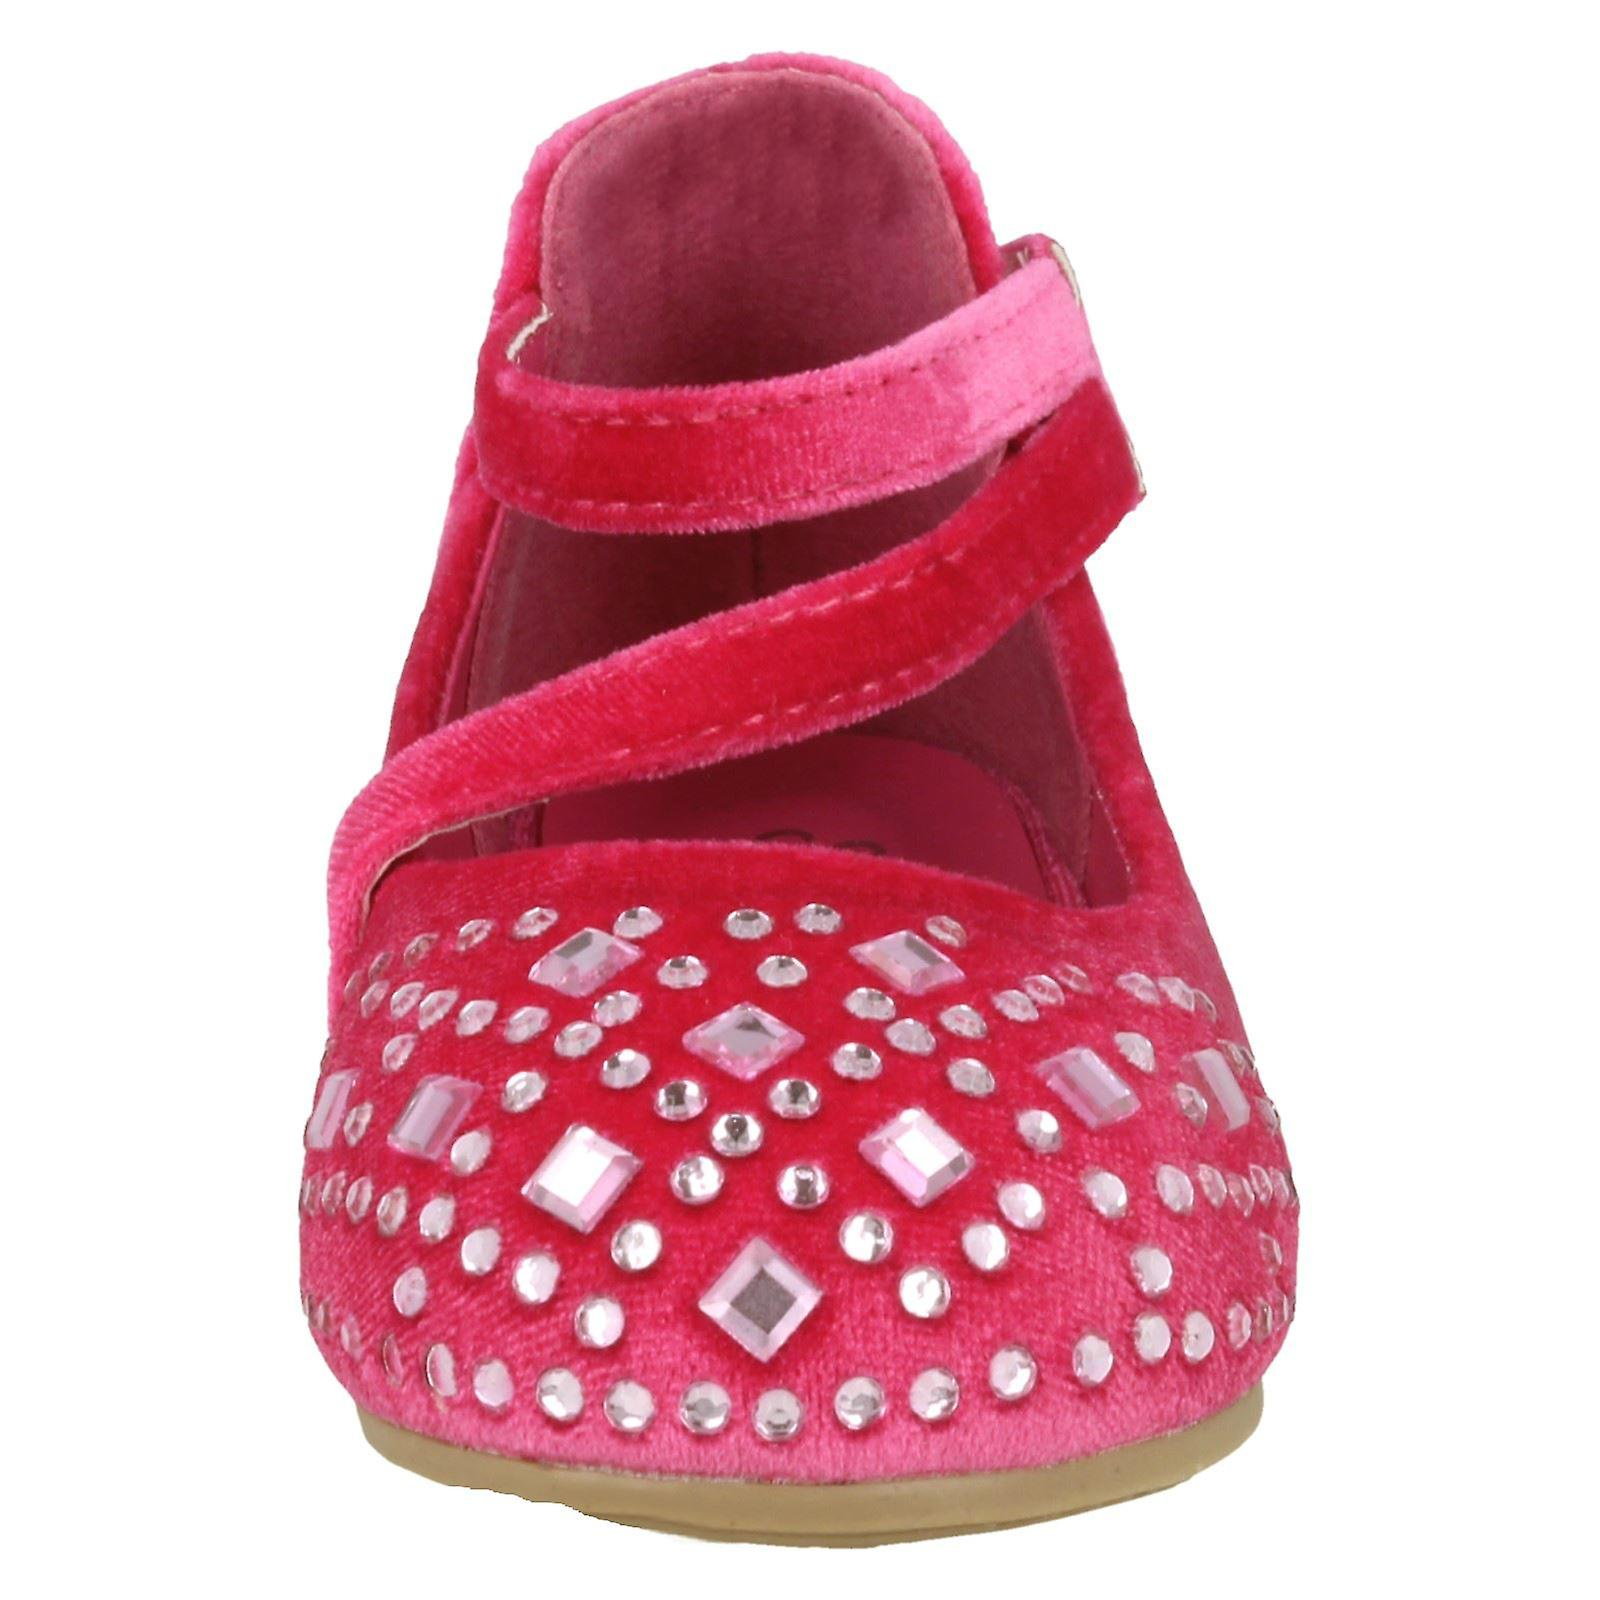 Girls Savannah Savannah Savannah Flat Velvet Shoes H2439 12804c